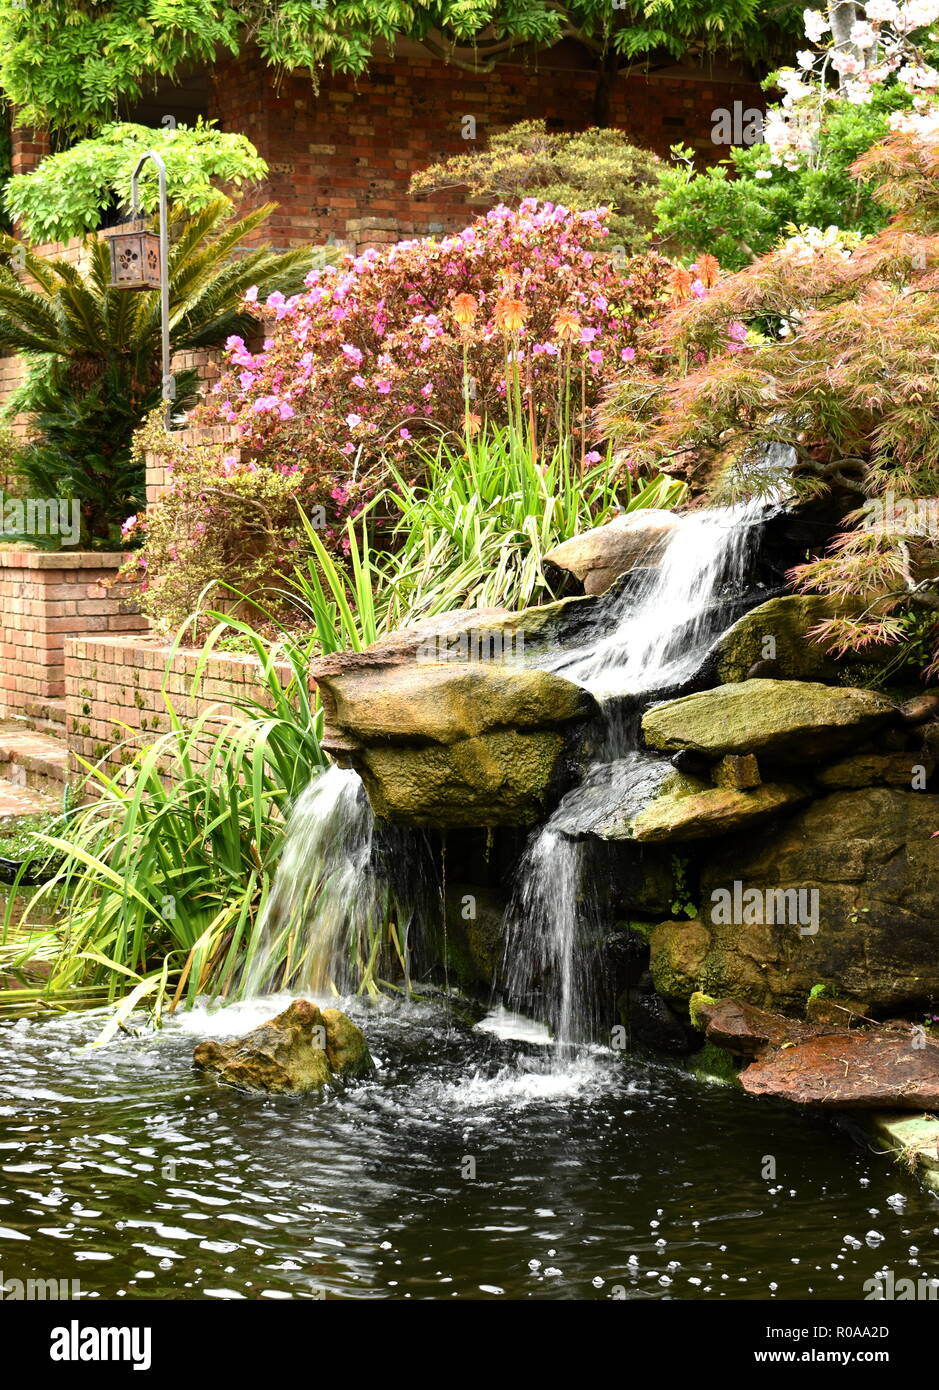 A constructed waterfall in a Japanese style garden, falling into a koi pool - Stock Image